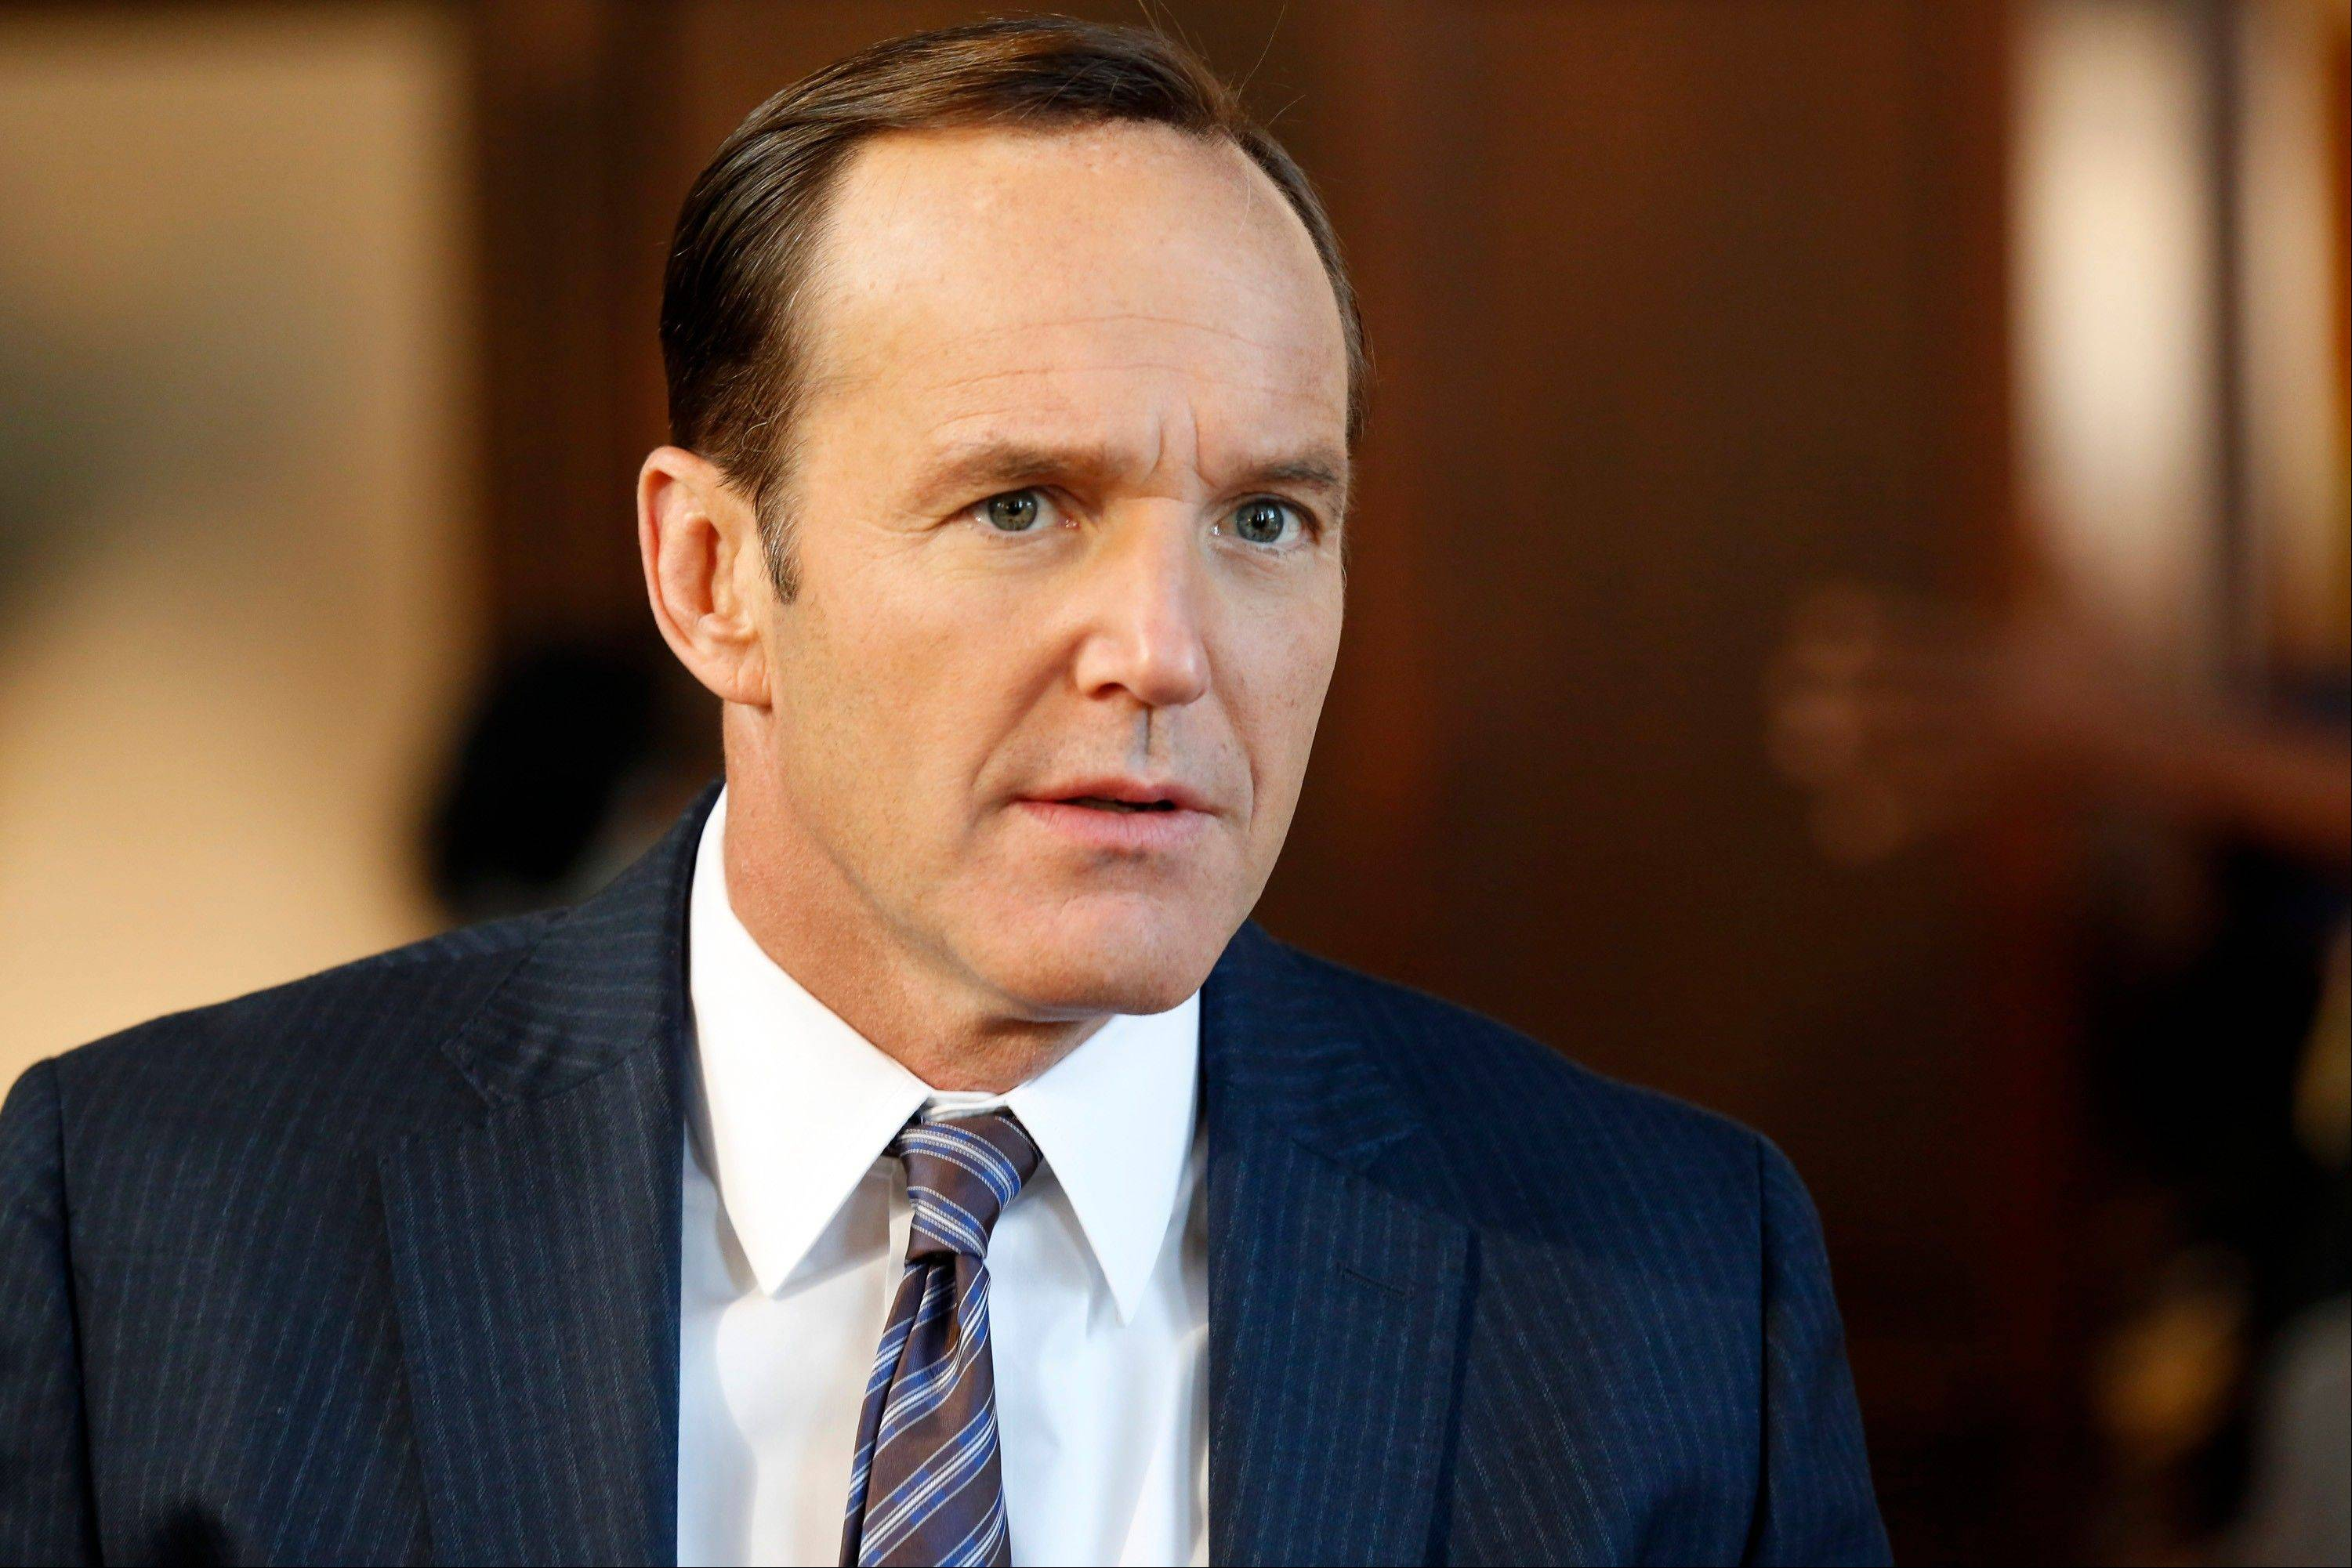 "Five years ago, Clark Gregg played Agent Phil Coulson for the first time as a small role in ""Iron Man."" Now, after gaining an ever-higher profile as Coulson in subsequent projects including last year's ""The Avengers,"" Gregg has broken out as the star of ""Marvel's Agents of S.H.I.E.L.D.,"" the new ABC sci-fi thriller that airs at 7 p.m. Tuesdays."